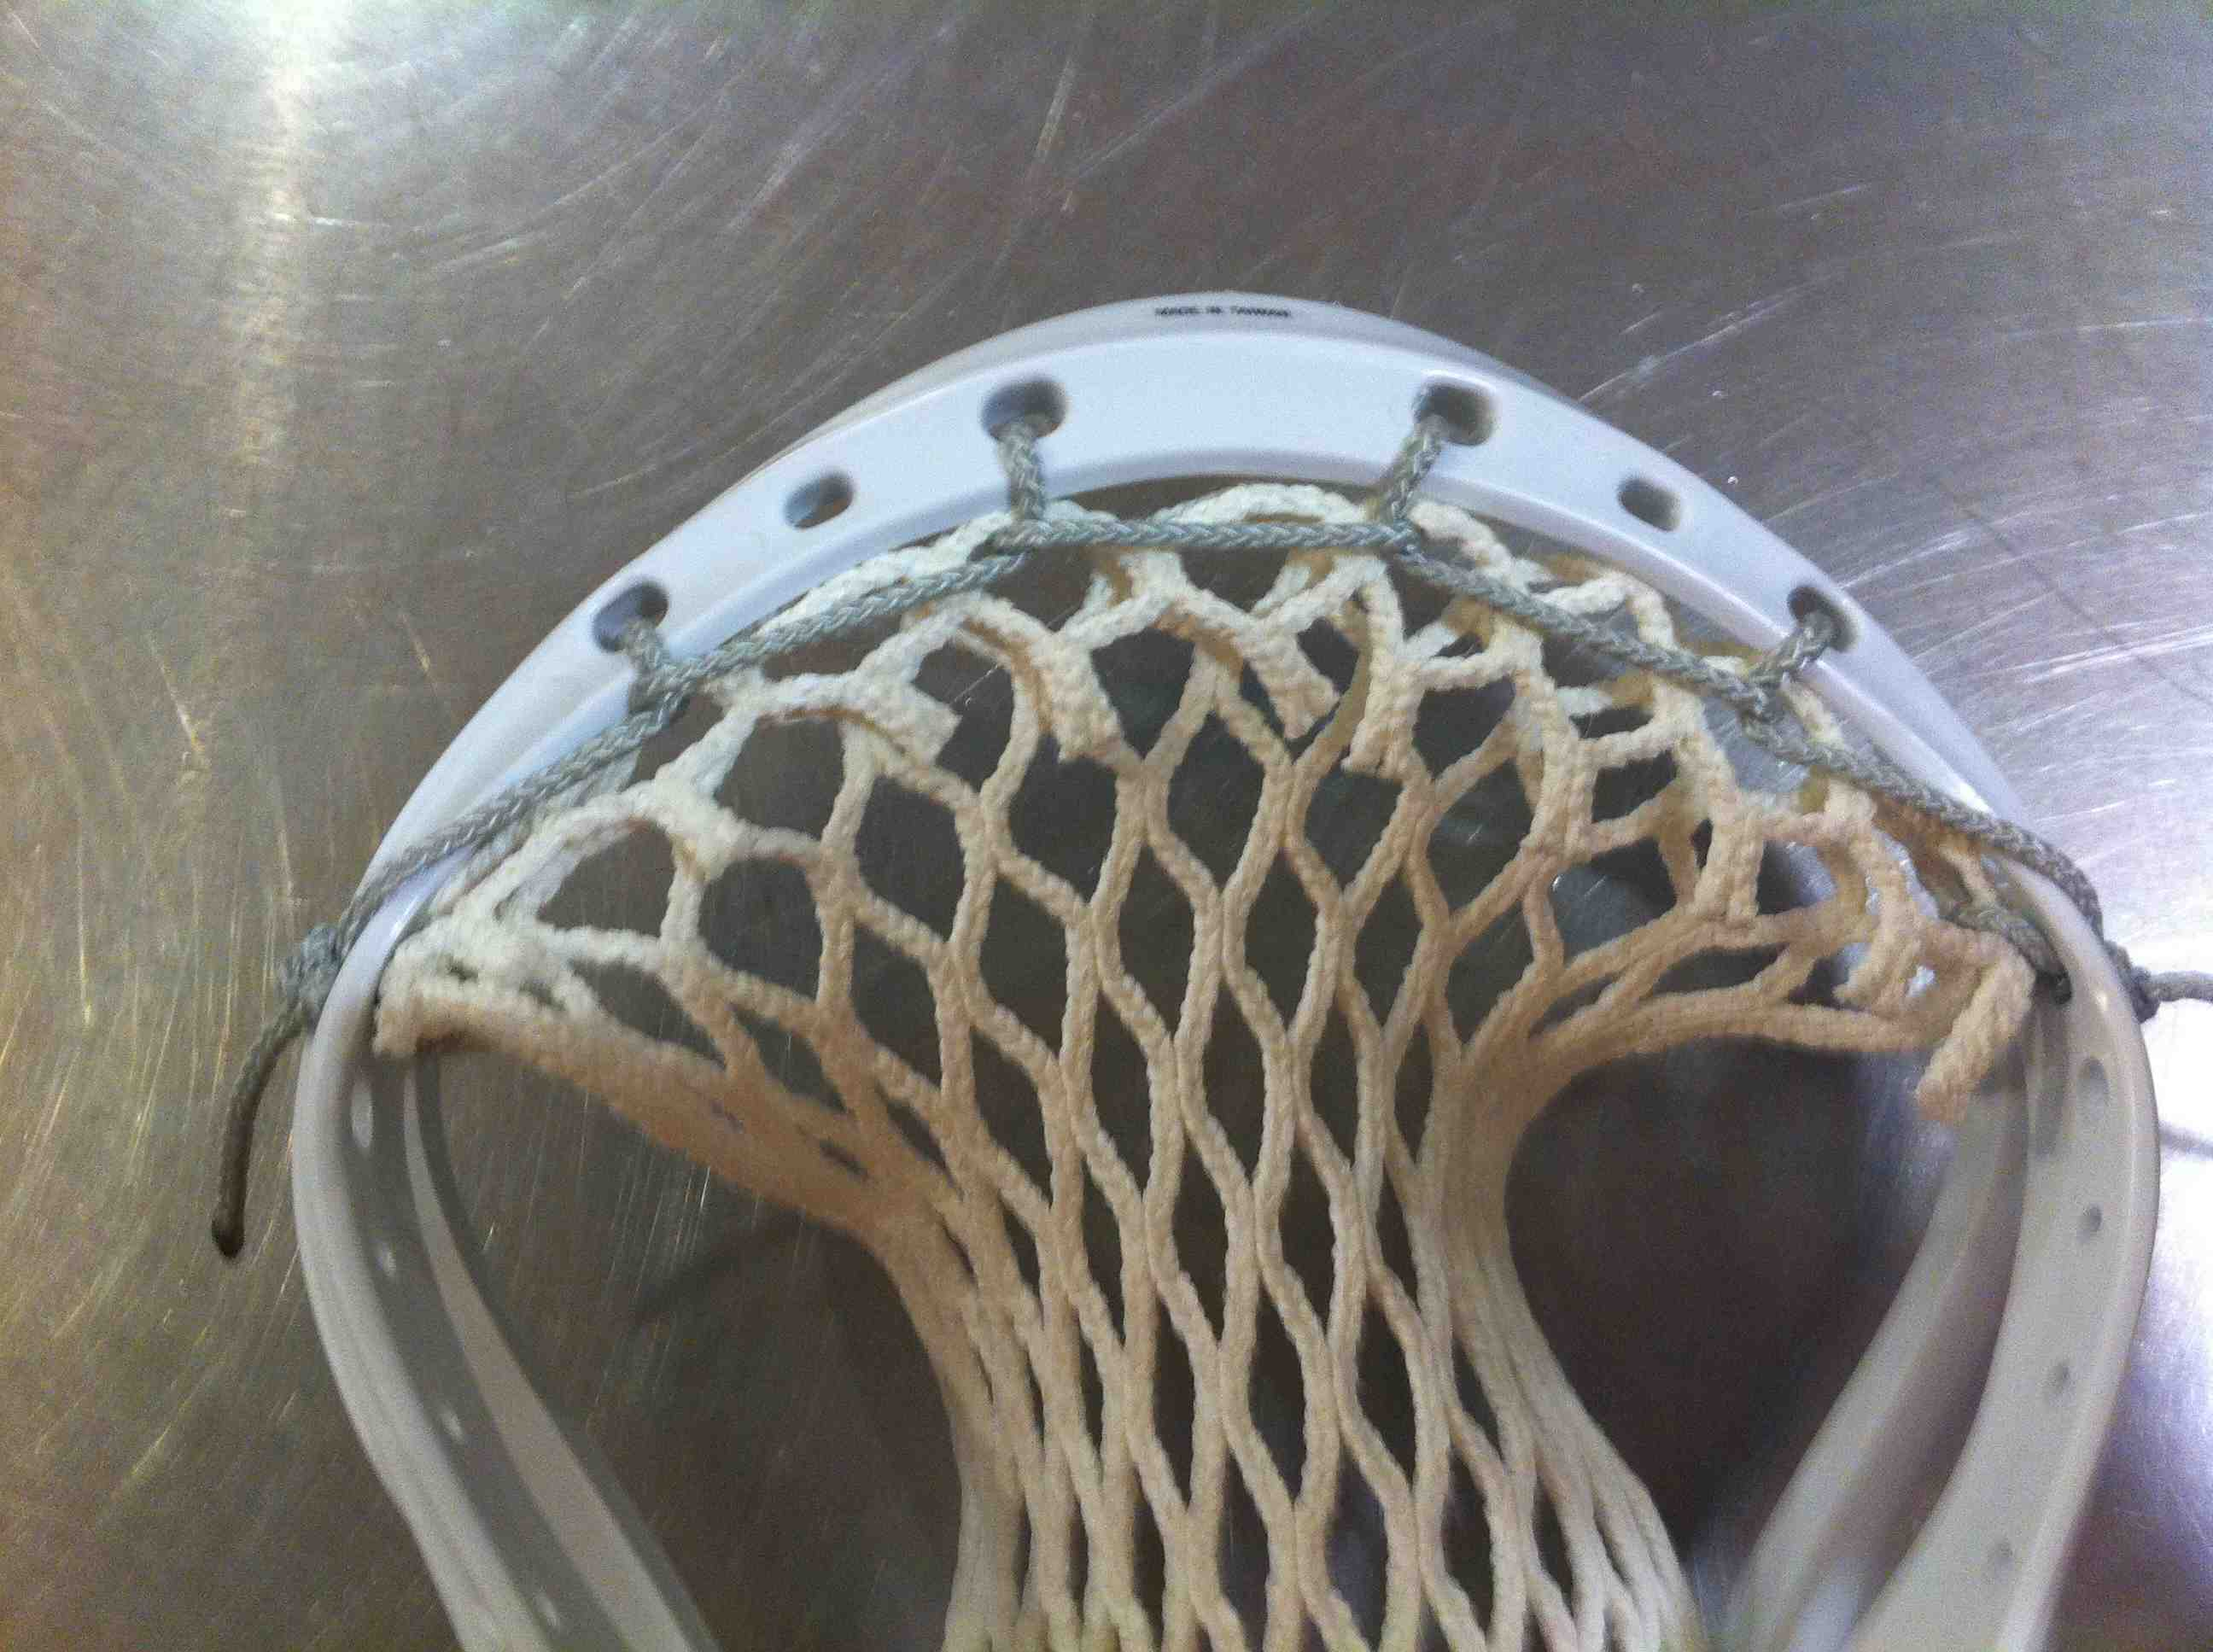 Stringing instructions Supplies lacrosse lax